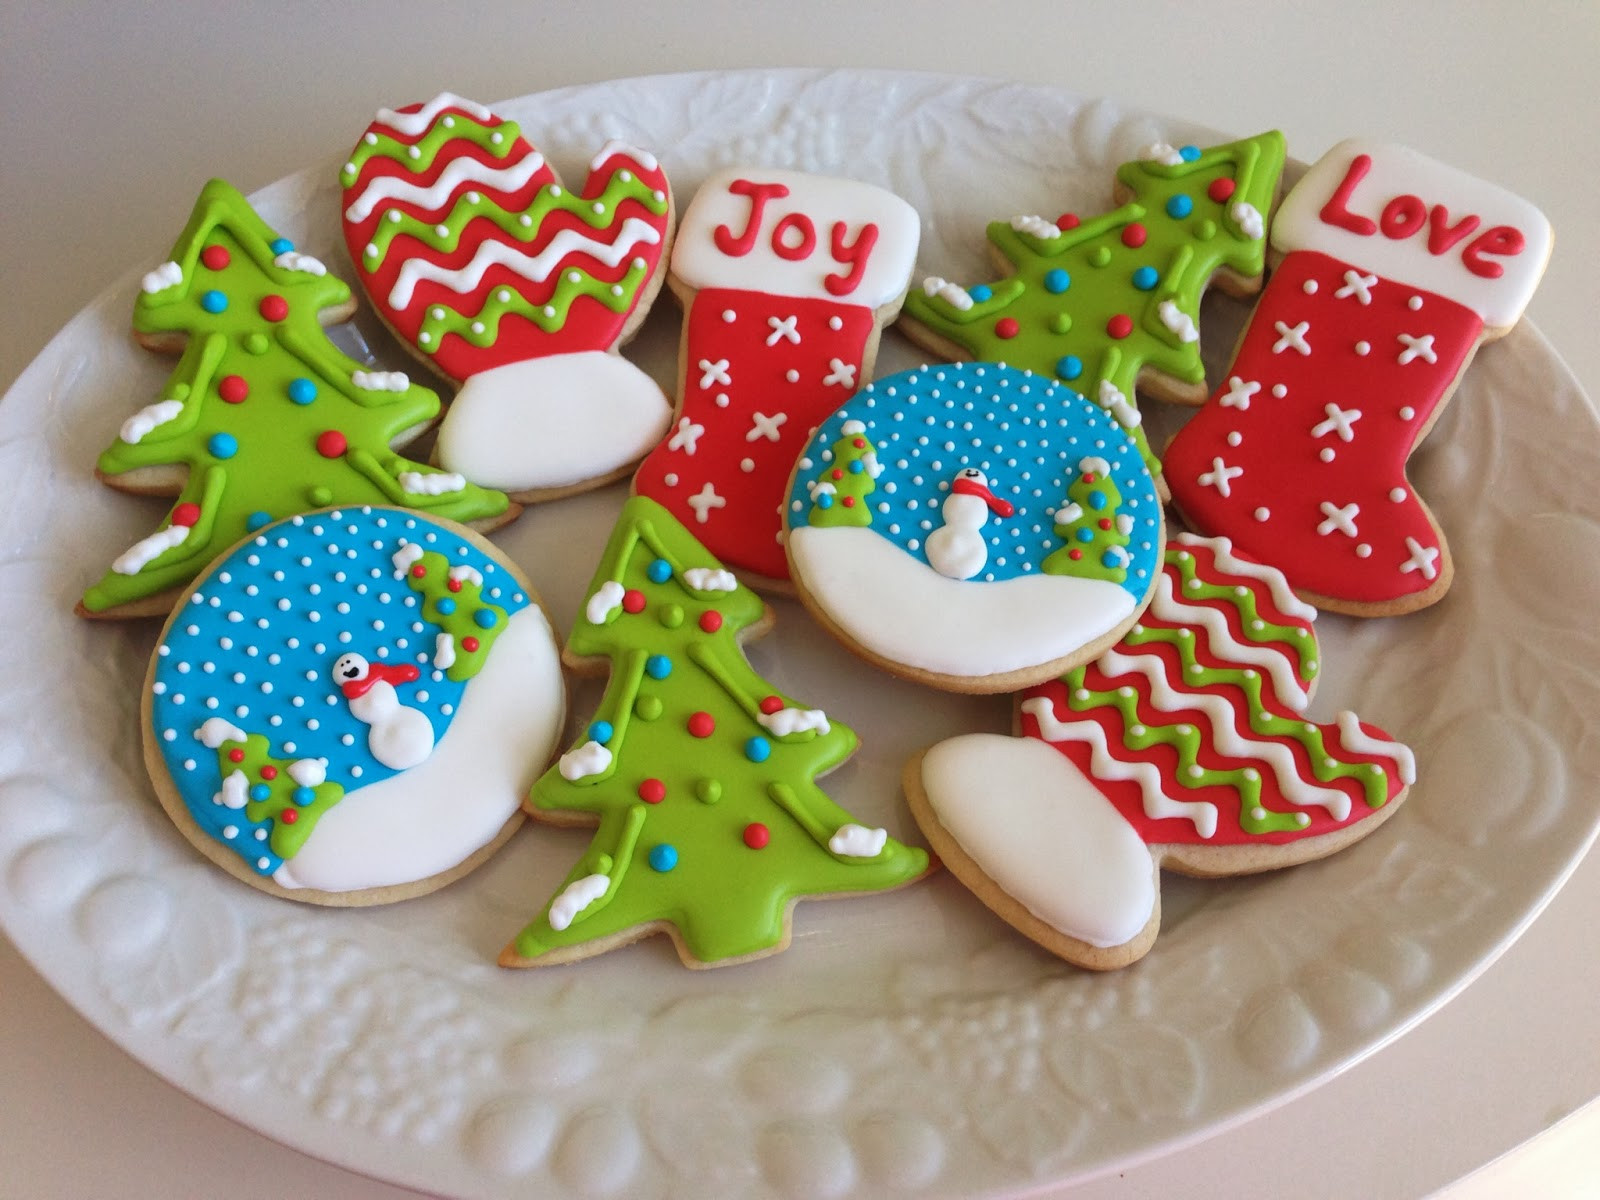 Icing For Christmas Cookies  monograms & cake Christmas Cut Out Sugar Cookies with